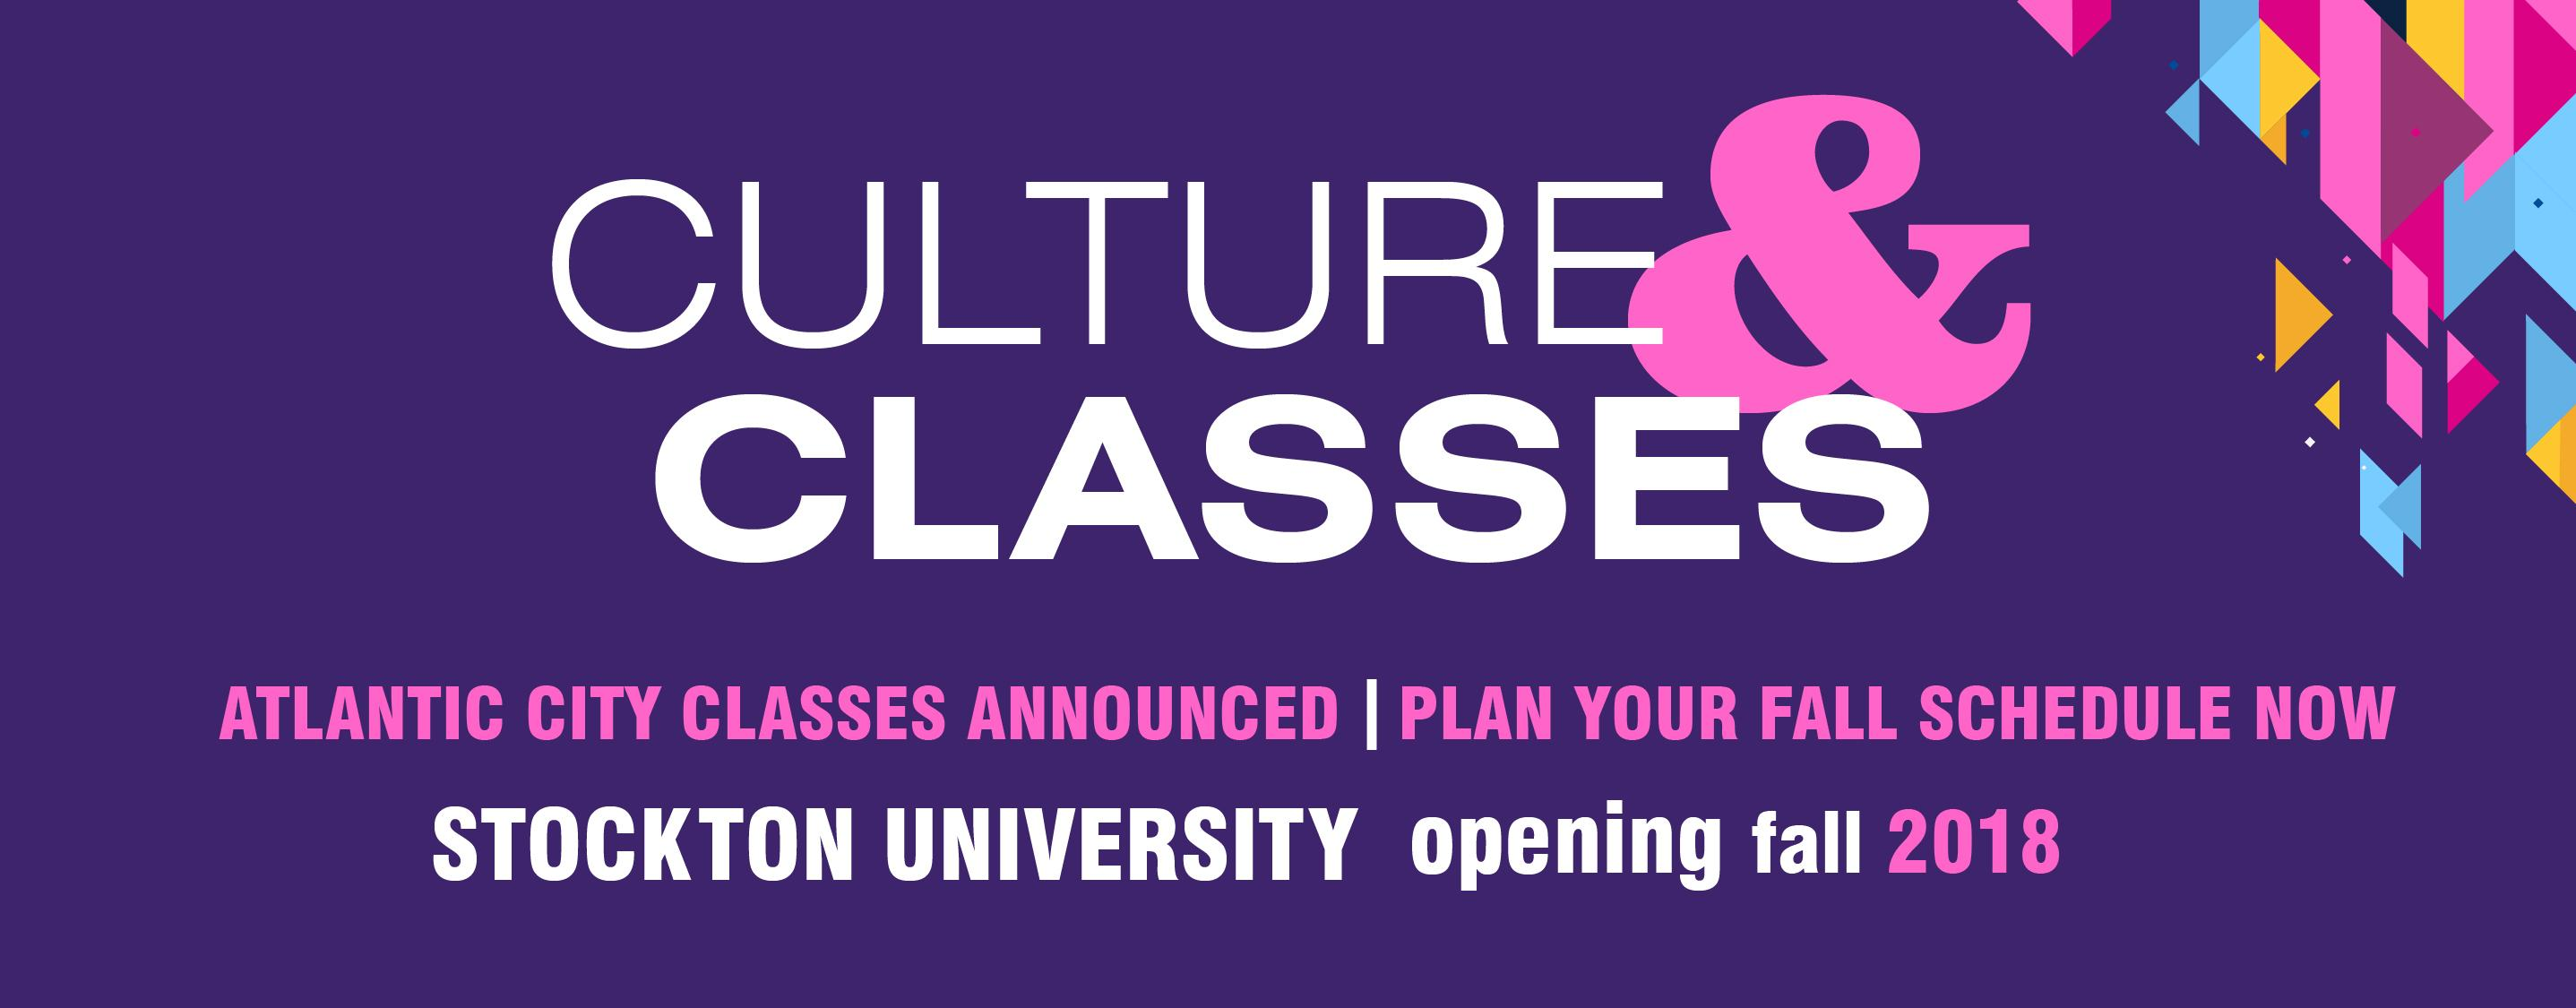 Culture and Classes - Plan Your Fall Schedule Now